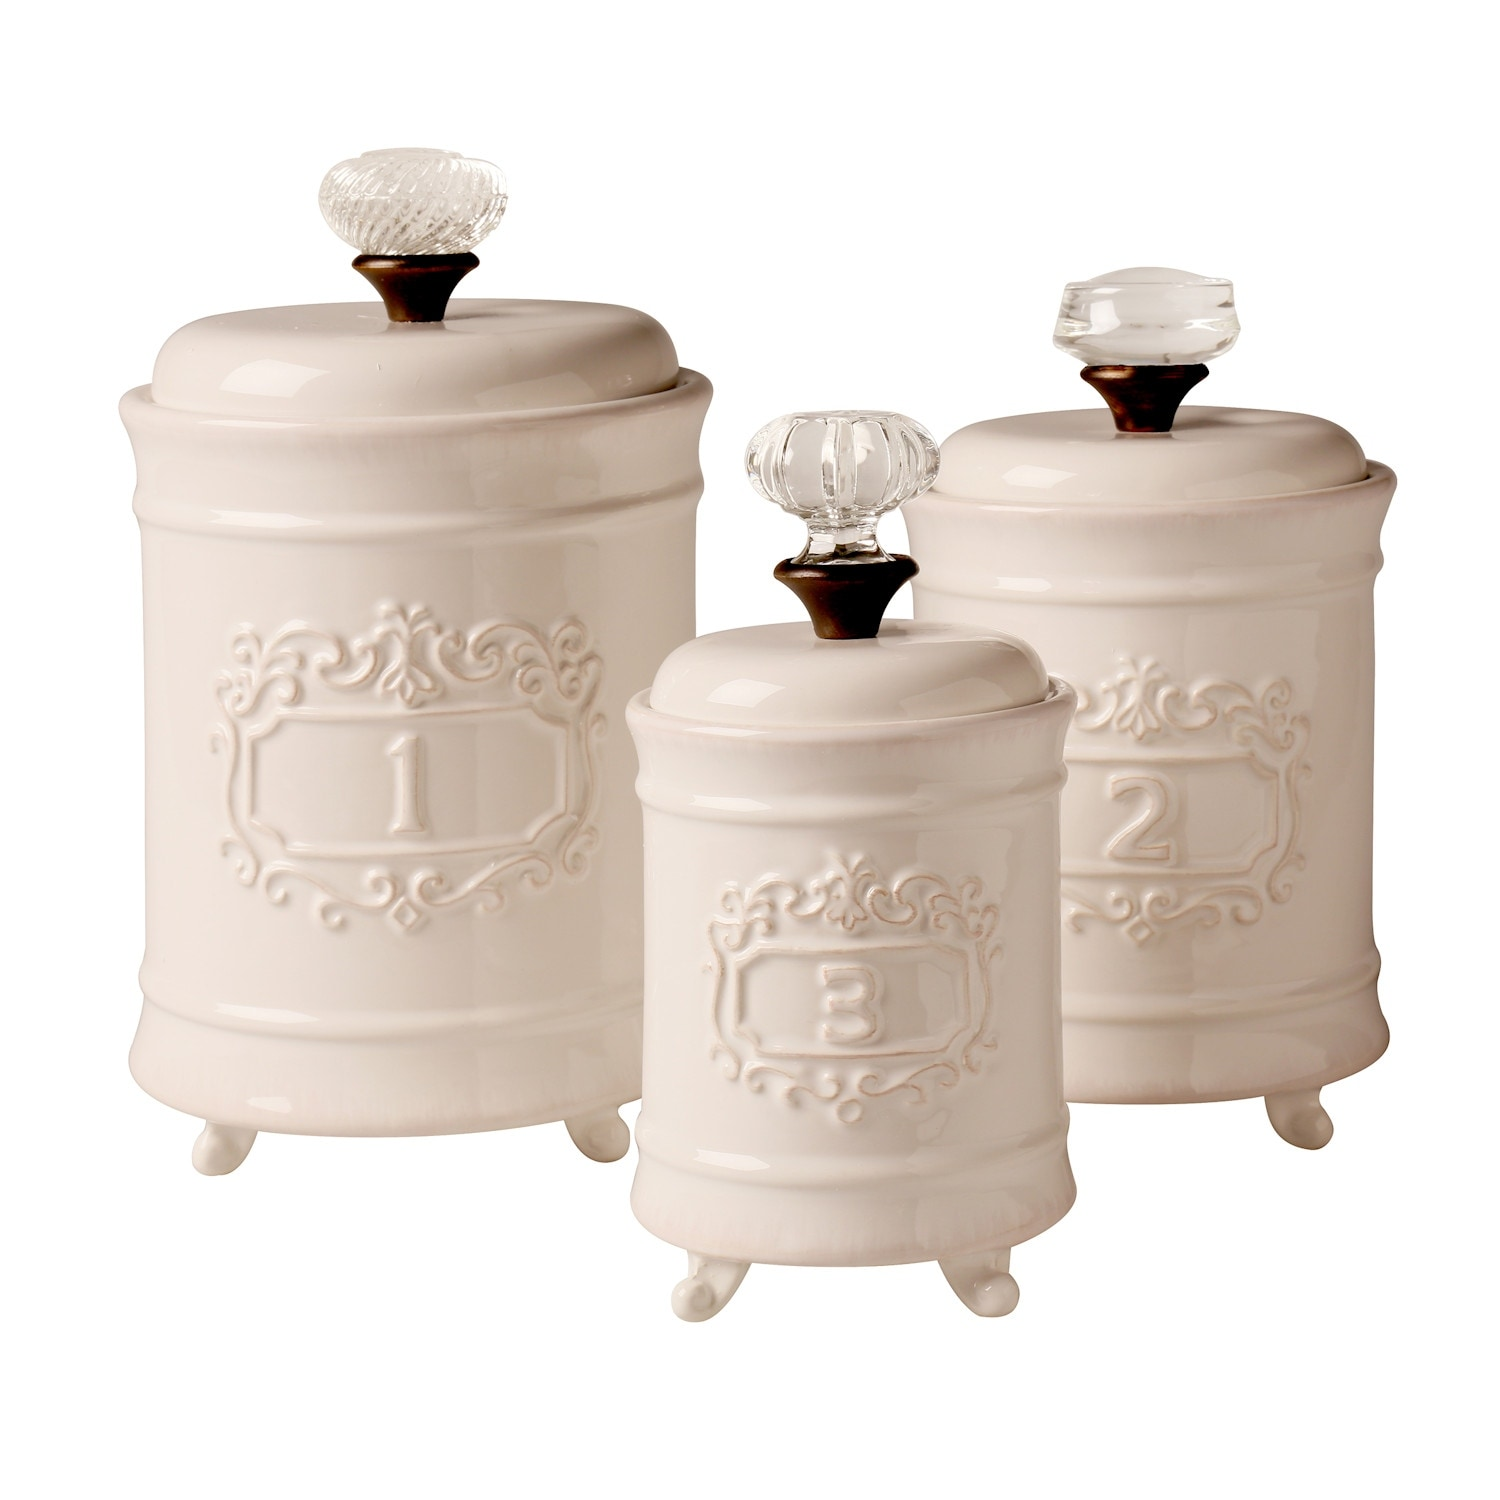 Mud Pie Kitchen Canisters - White Ceramic Lidded Jars - Set of 3 - 10 in. x  6 in. x 6 in.